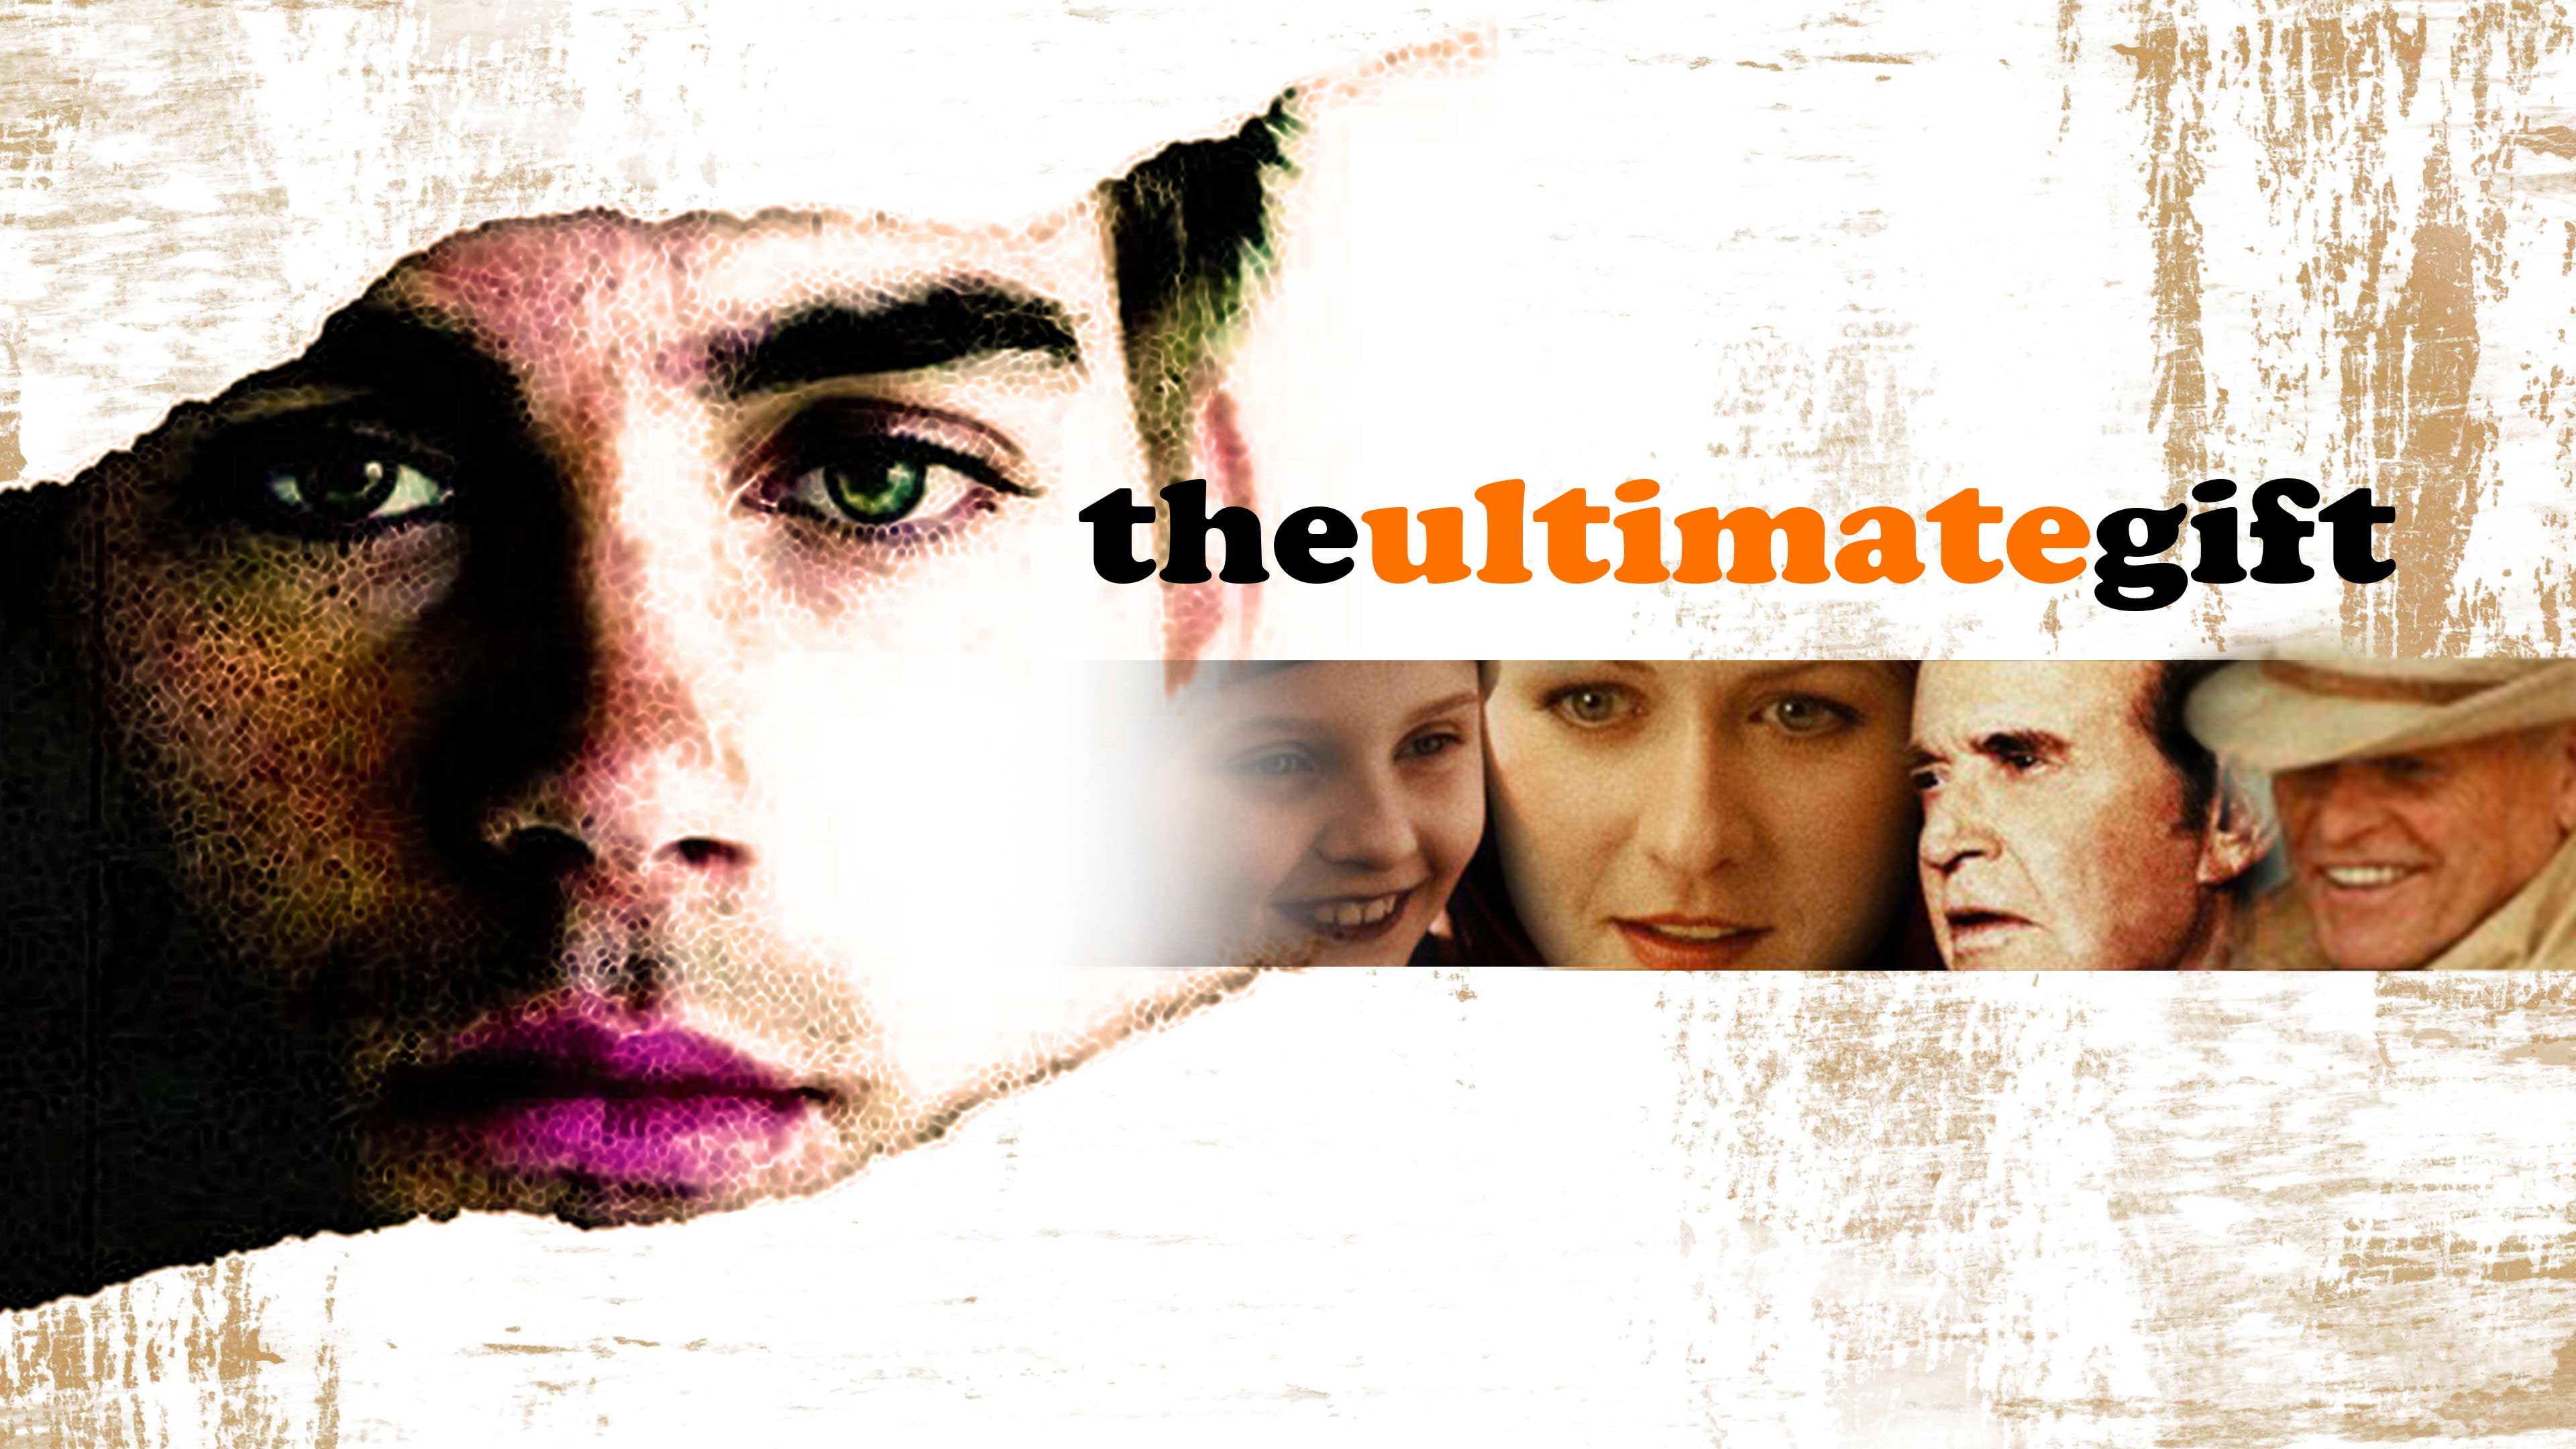 The Ultimate Gift Pure Flix